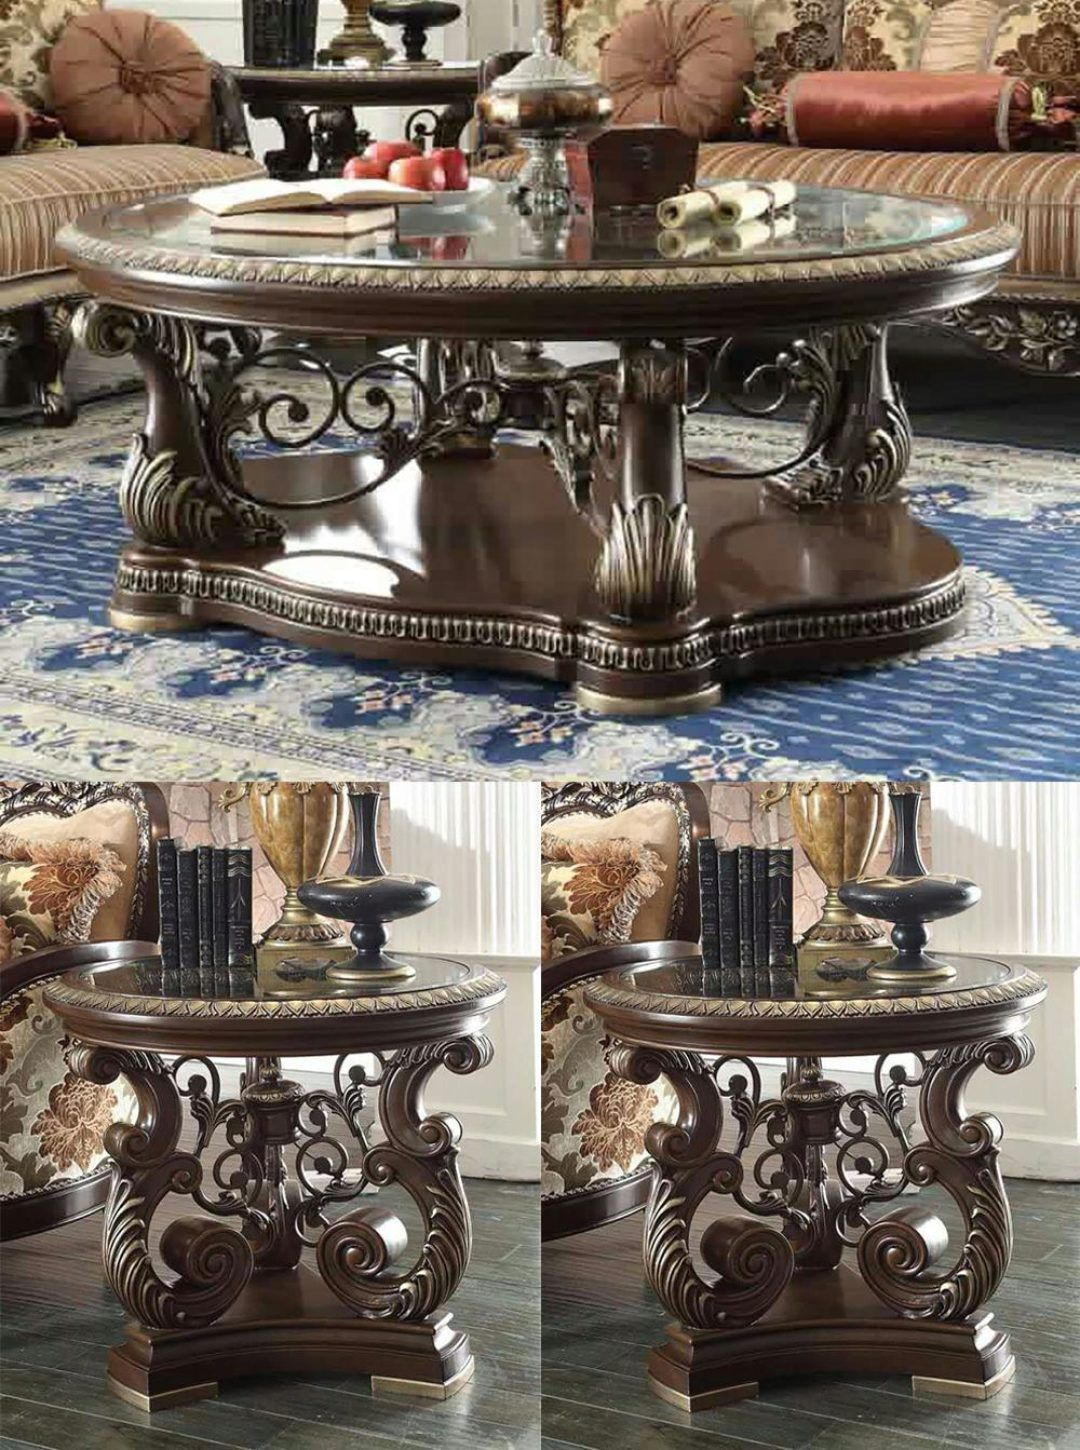 Brown Cherry Coffee Table Set 3pcs Carved Wood Traditional Homey Design Hd 8013 Hd 8013 Ctset3 Traditional Coffee Table Cherry Coffee Table Traditional Coffee Table Sets [ 1450 x 1080 Pixel ]